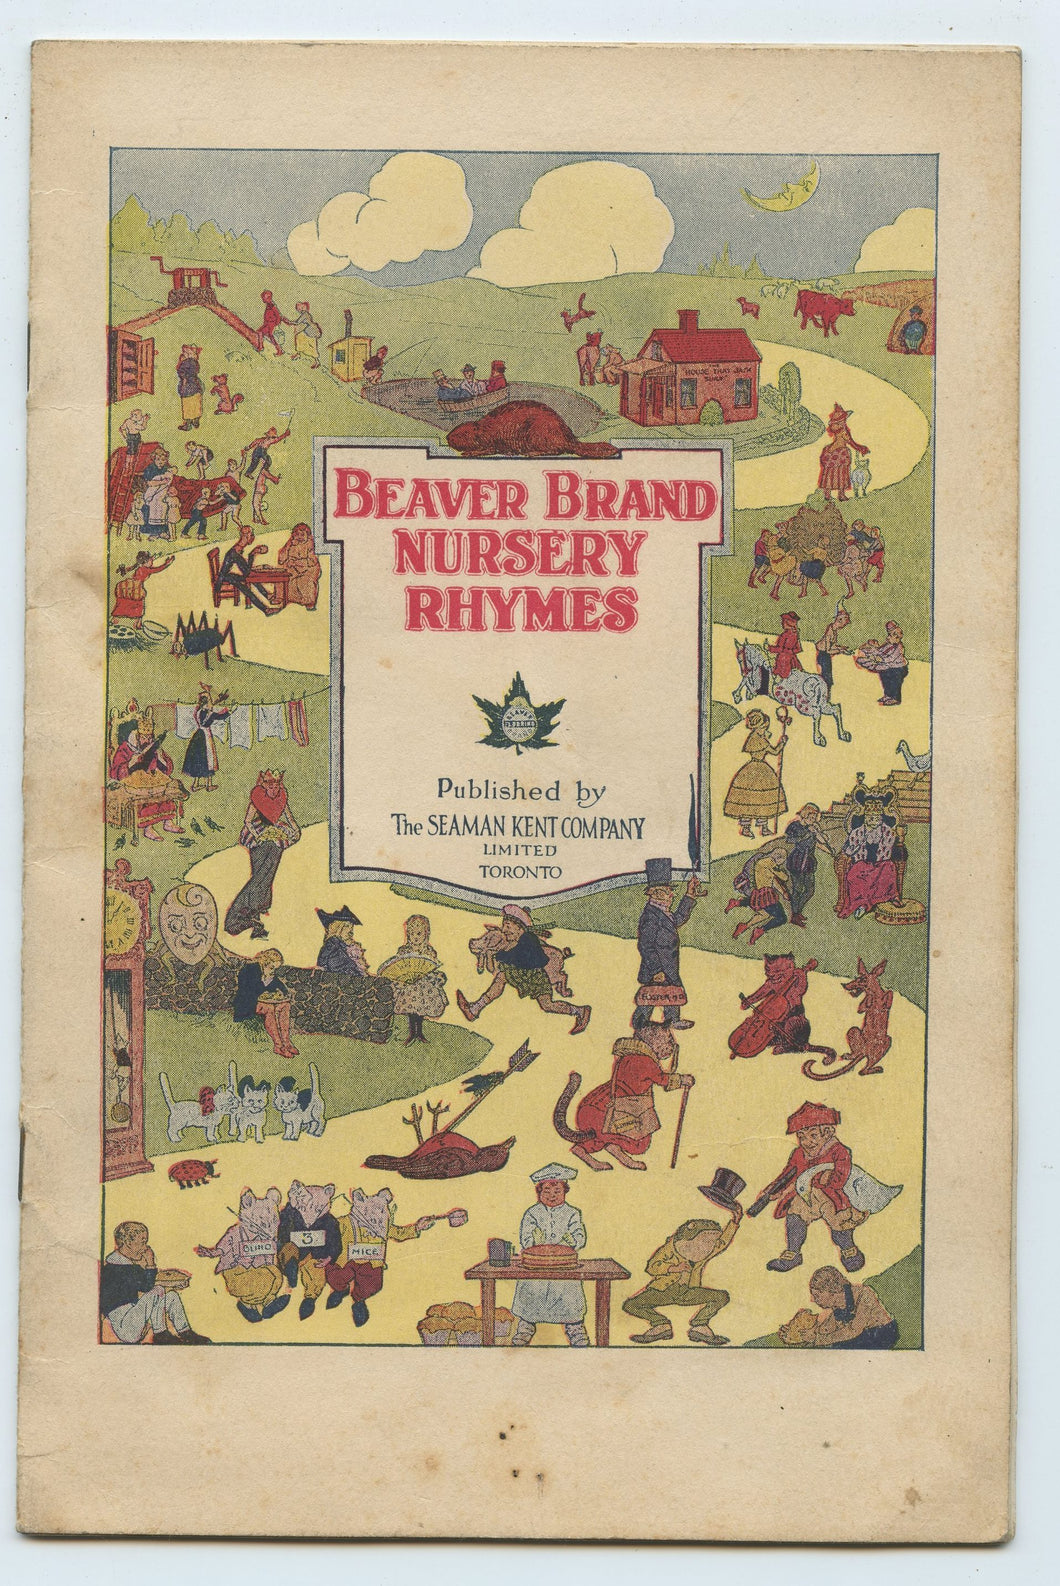 Beaver Brand Nursery Rhymes